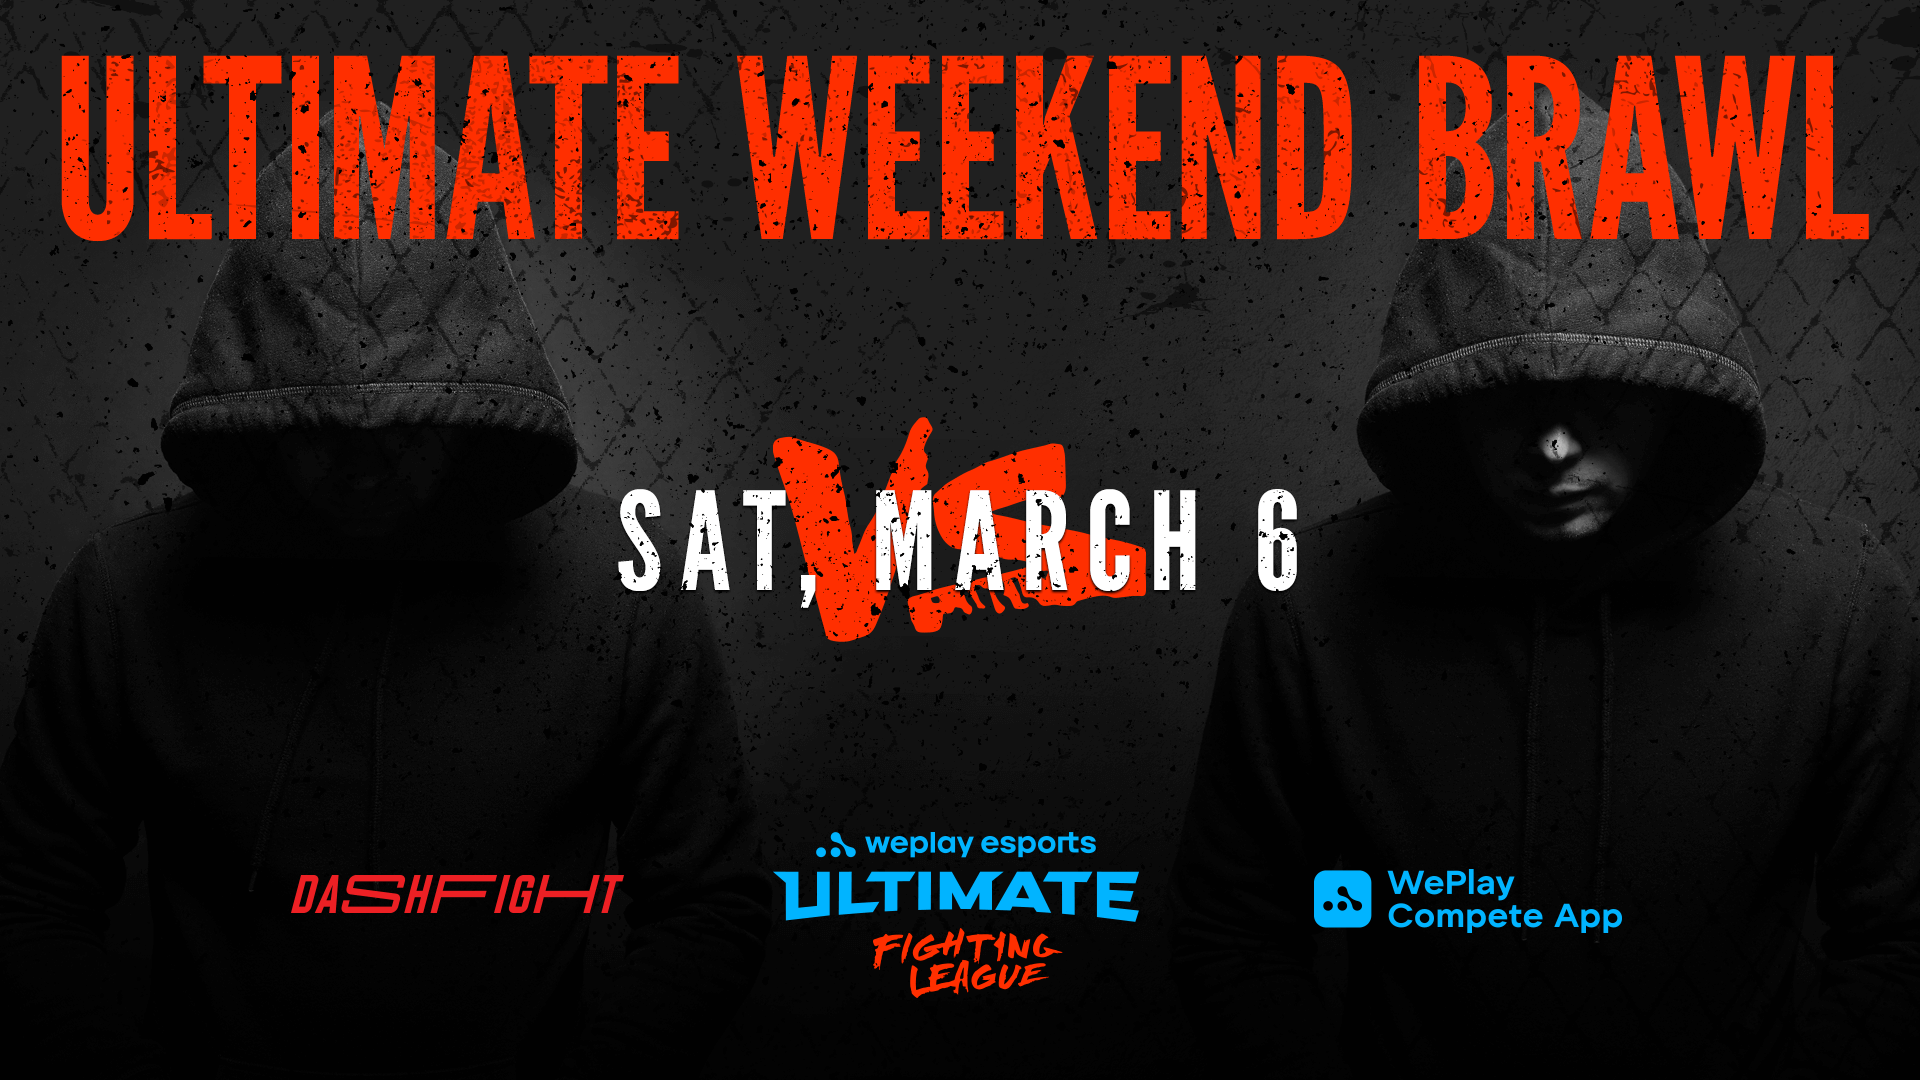 Ultimate Weekend Brawl #1 Recap